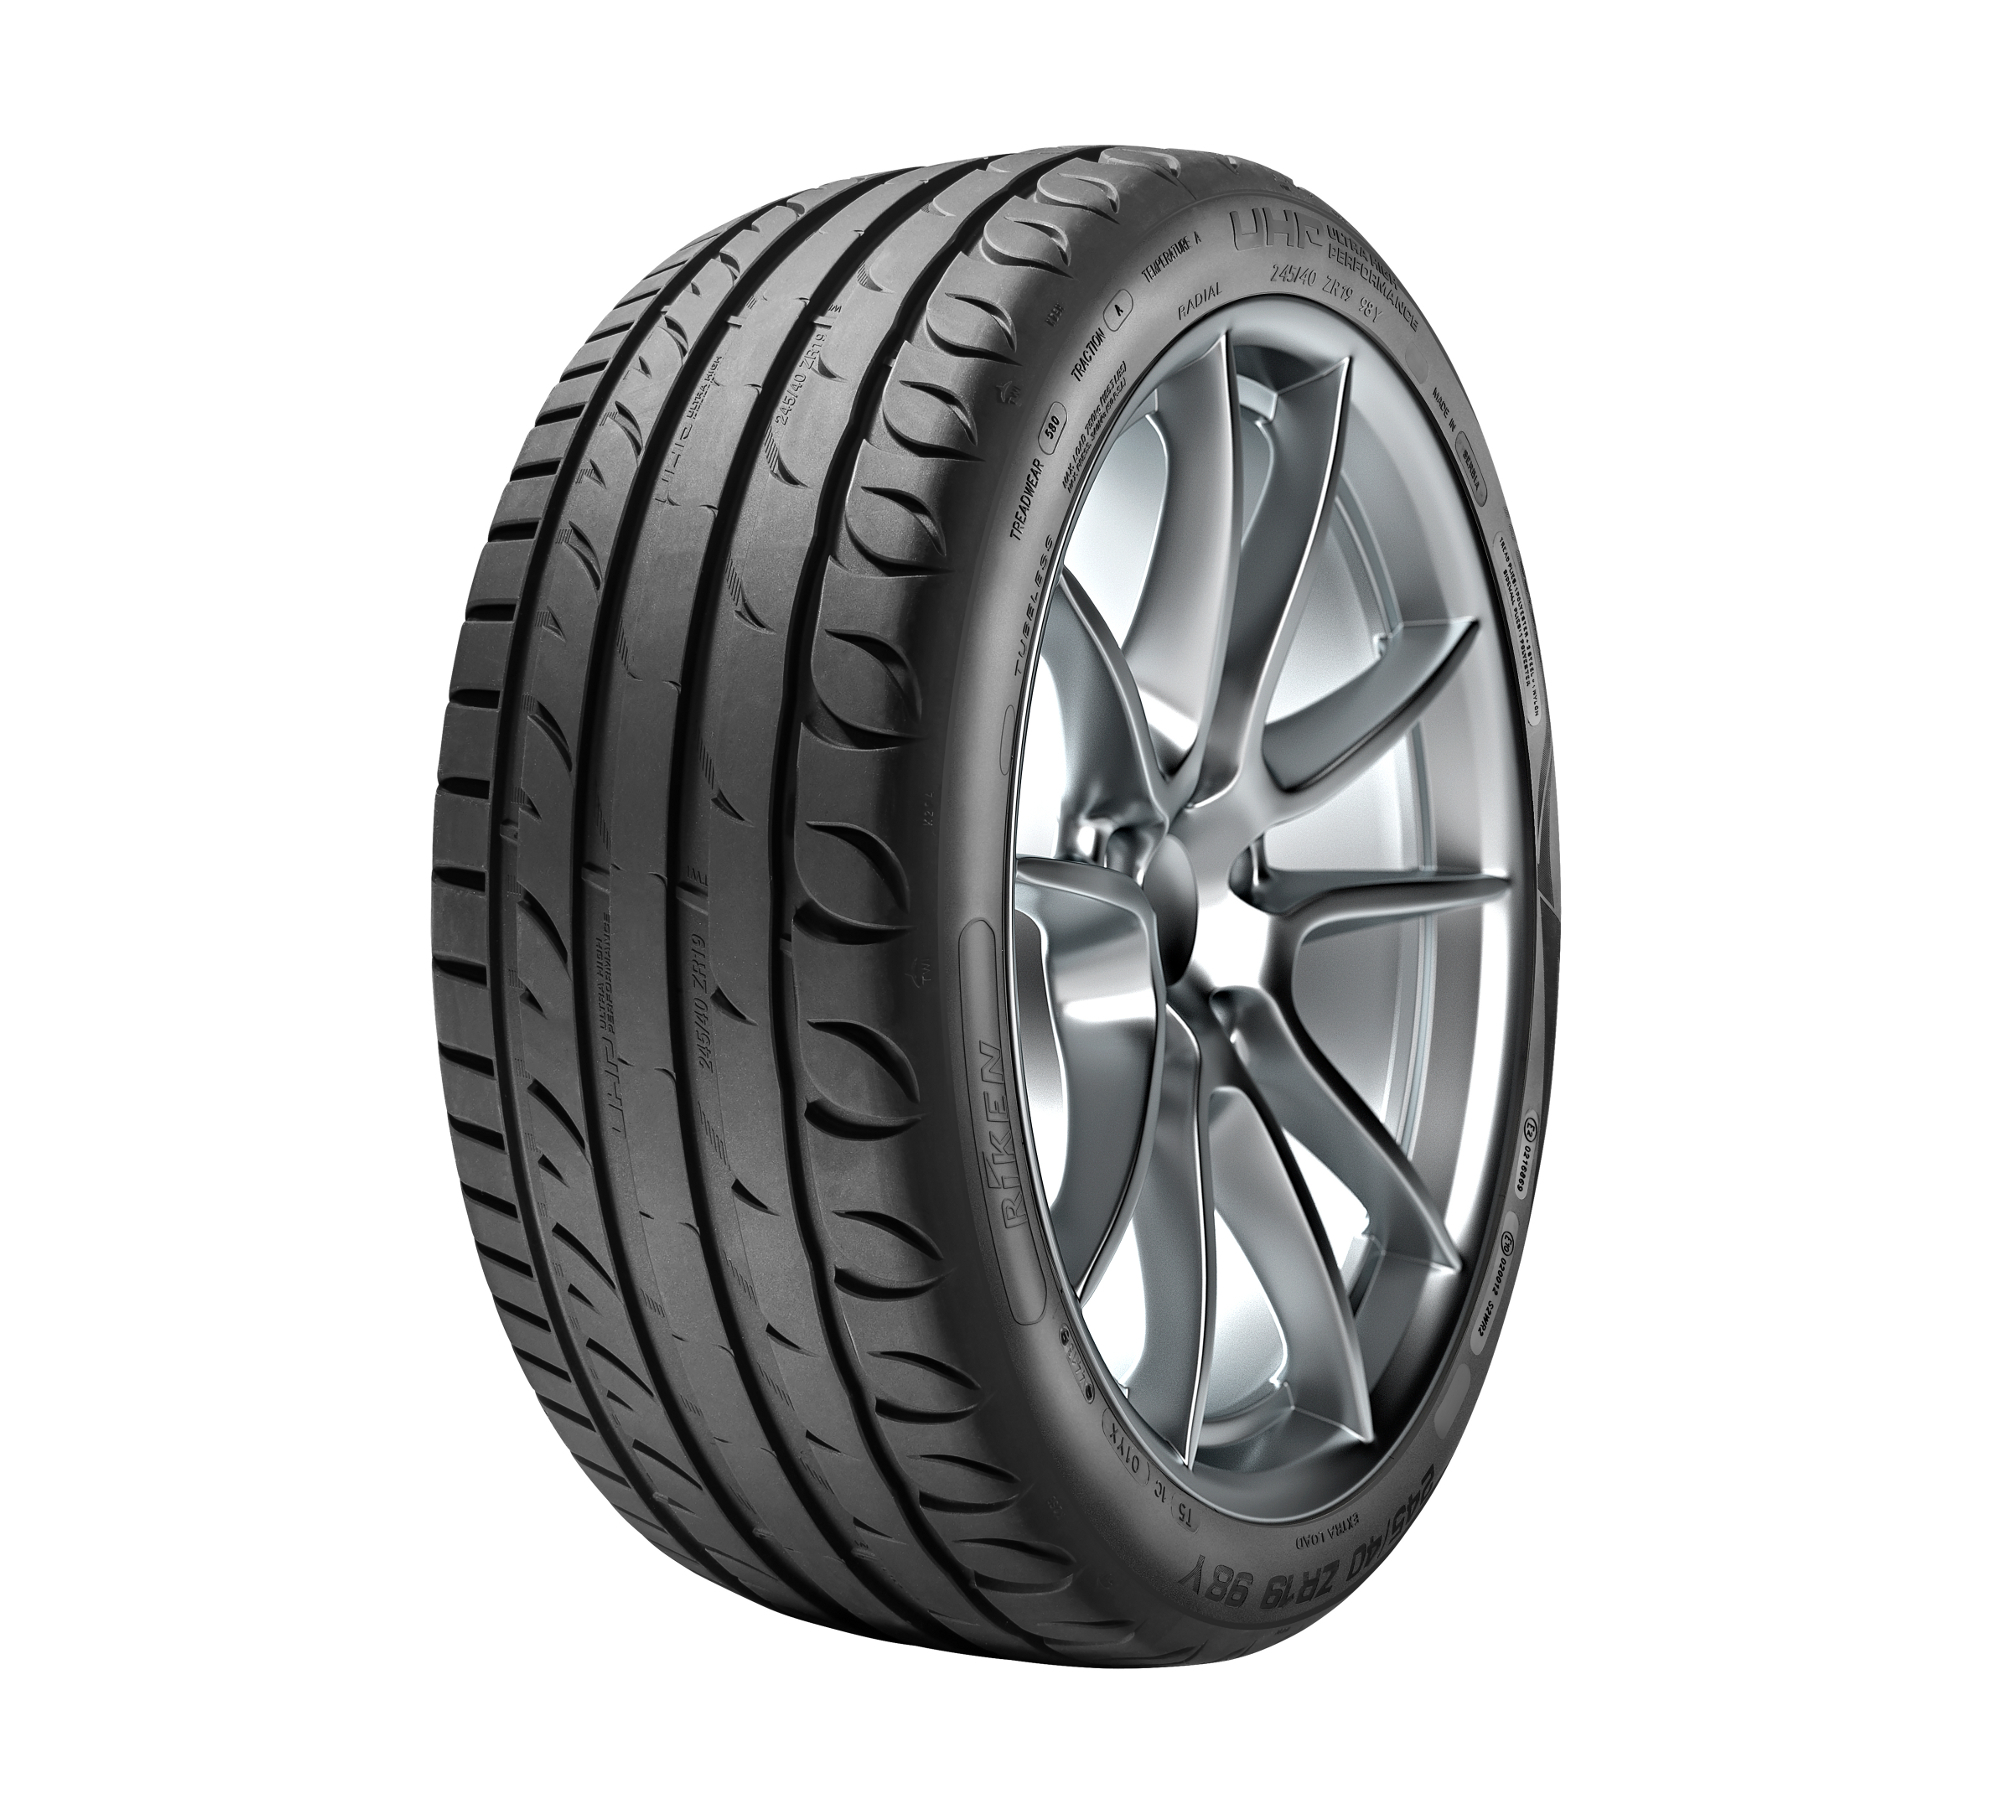 Gomme Nuove Riken 235/45 R17 97Y ULTRA HIGH PERFOR XL pneumatici nuovi Estivo